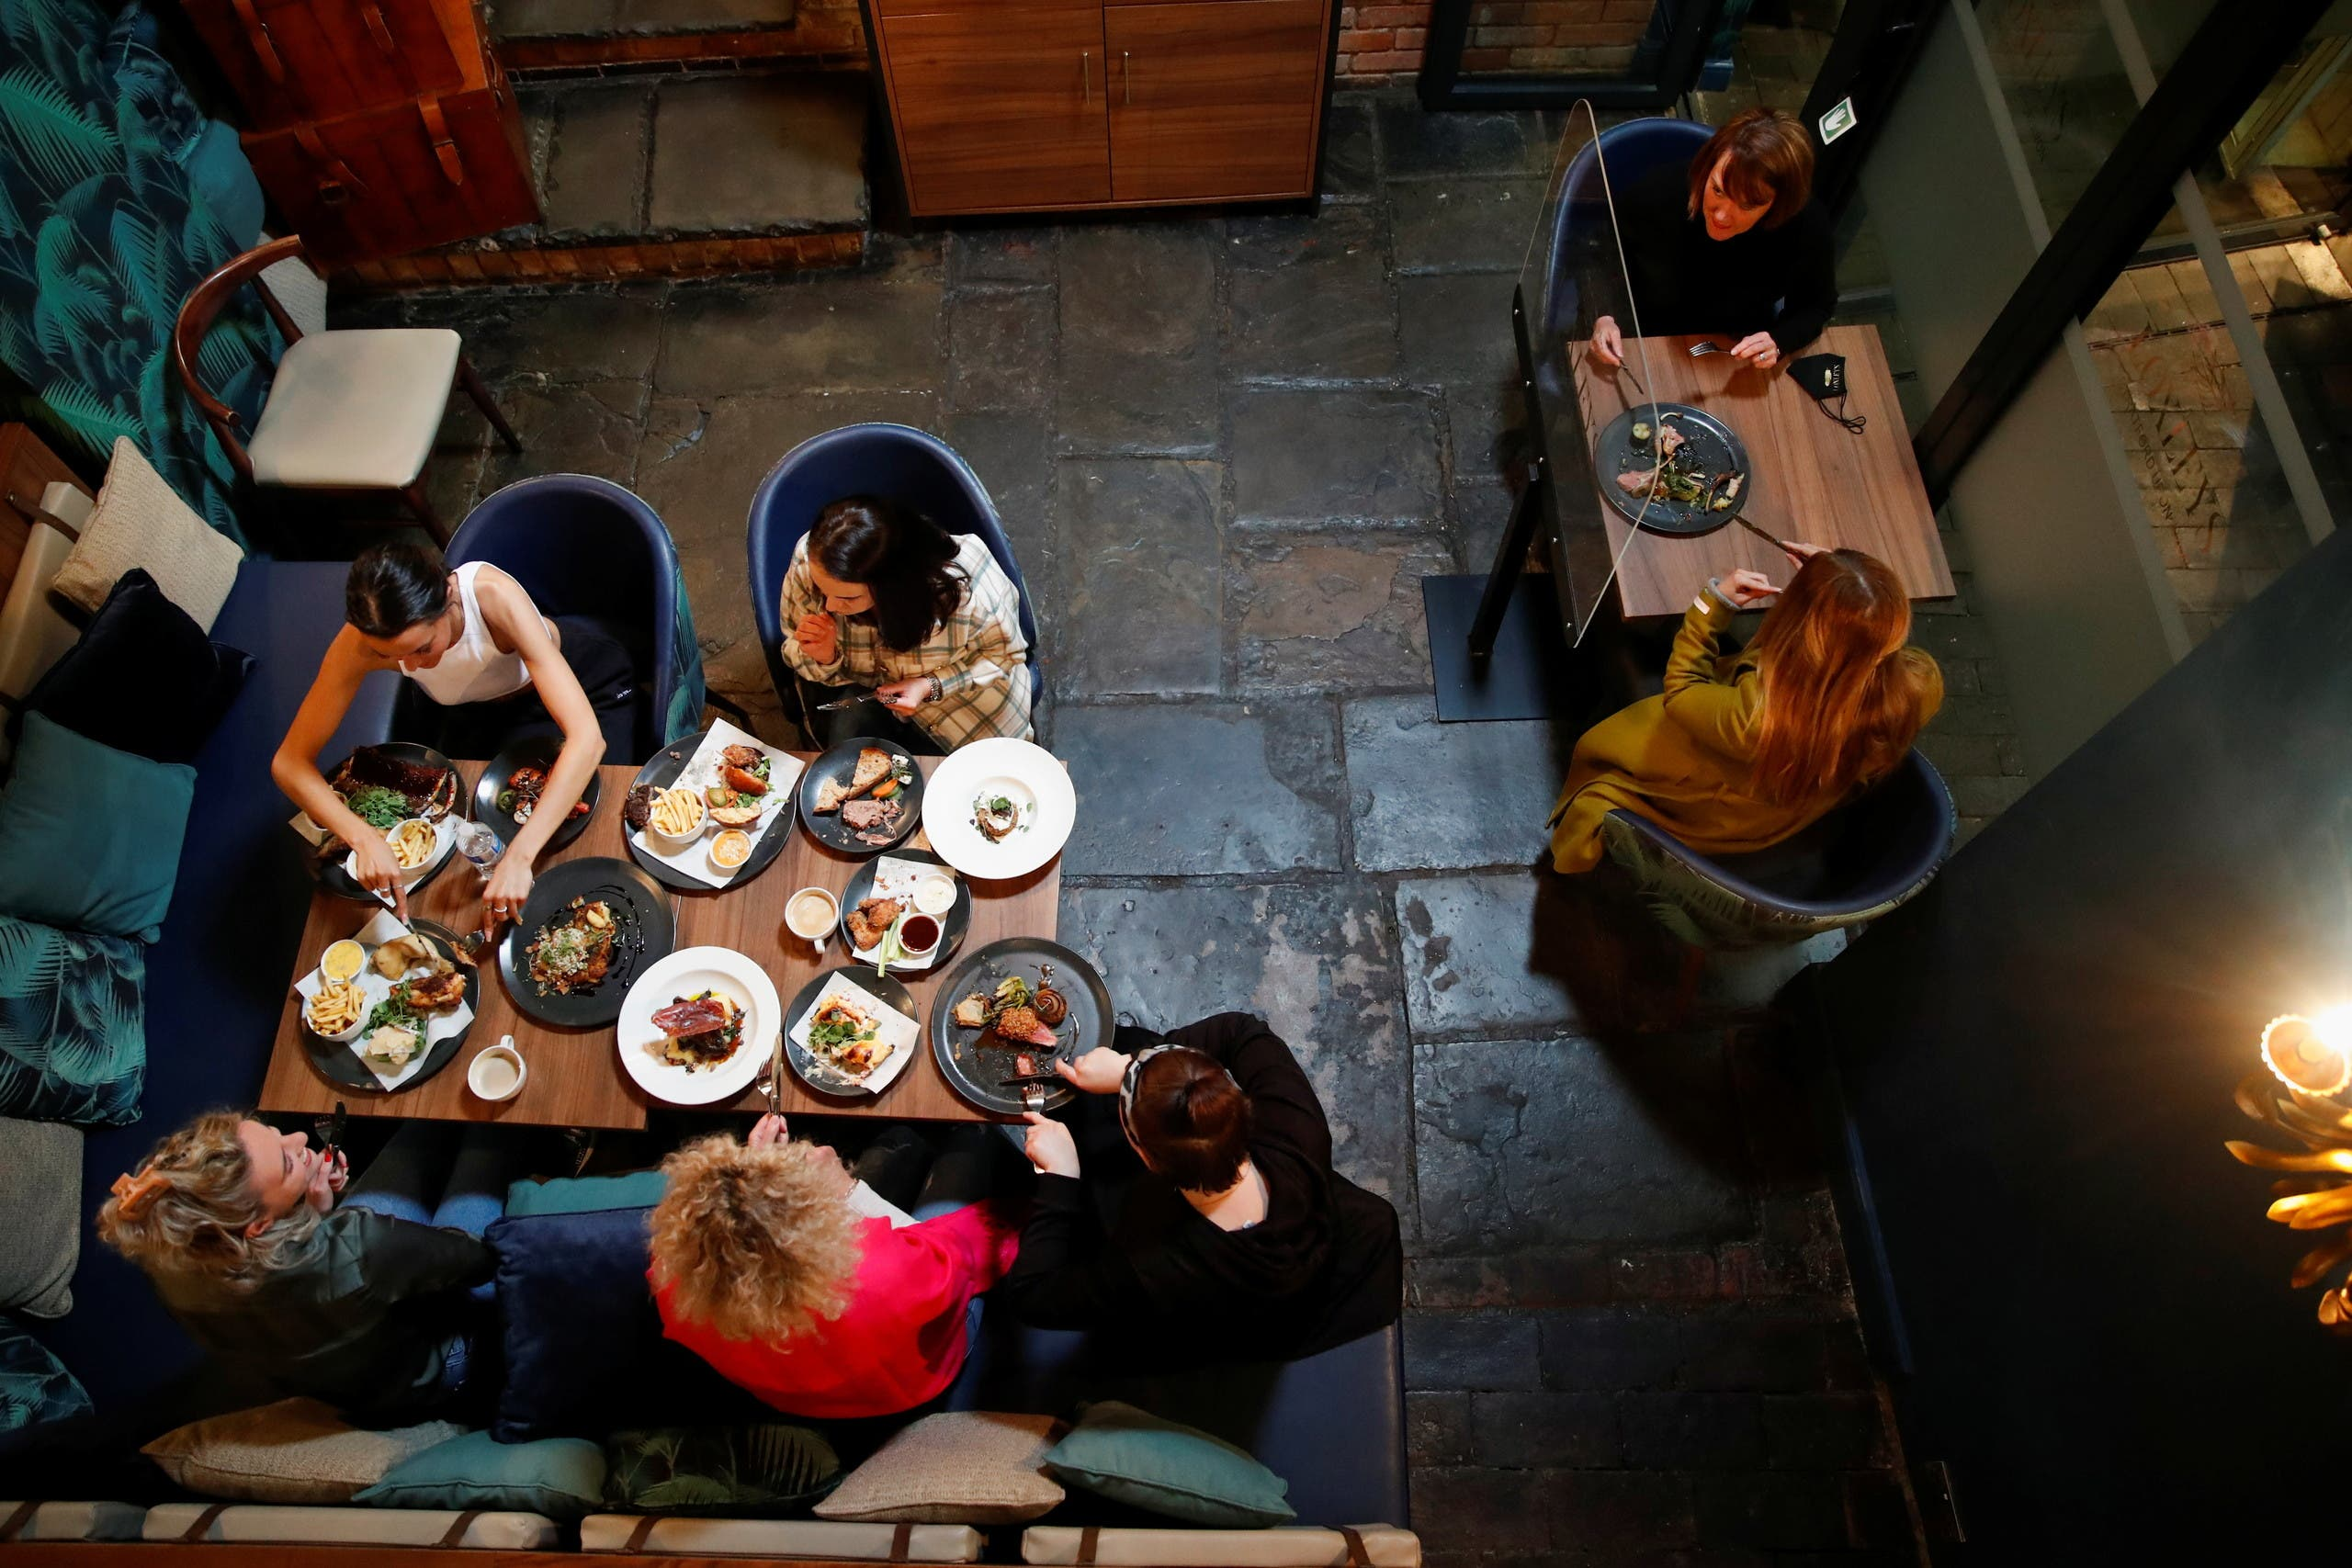 Staff at Loxley's Restaurant & Wine Bar take part in a new menu tasting and training before reopening on Monday 17th, as coronavirus disease (COVID-19) restrictions continue to ease, in Stratford Upon Avon, Britain, May 14, 2021. (Reuters)